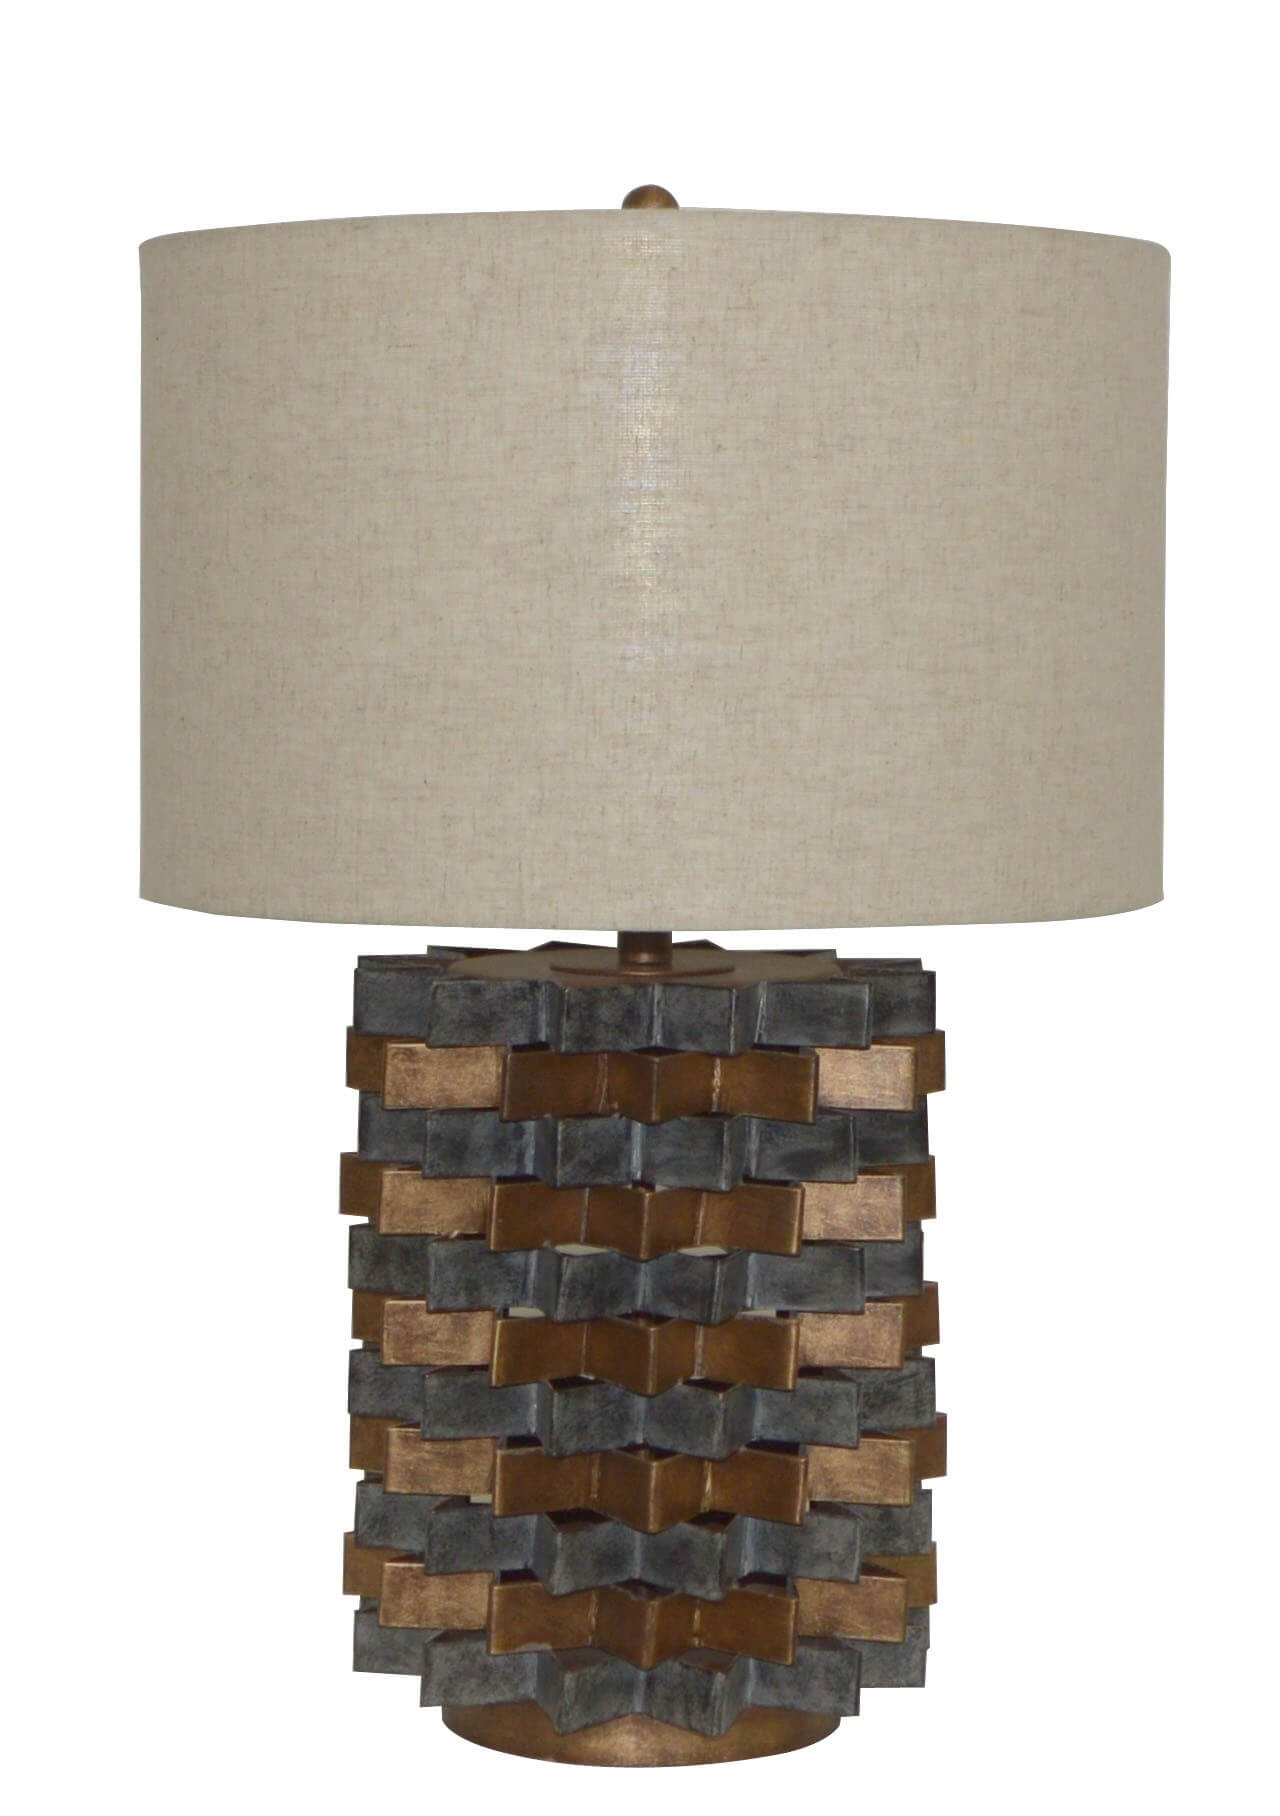 Victoria grey/ copper table lamp DC